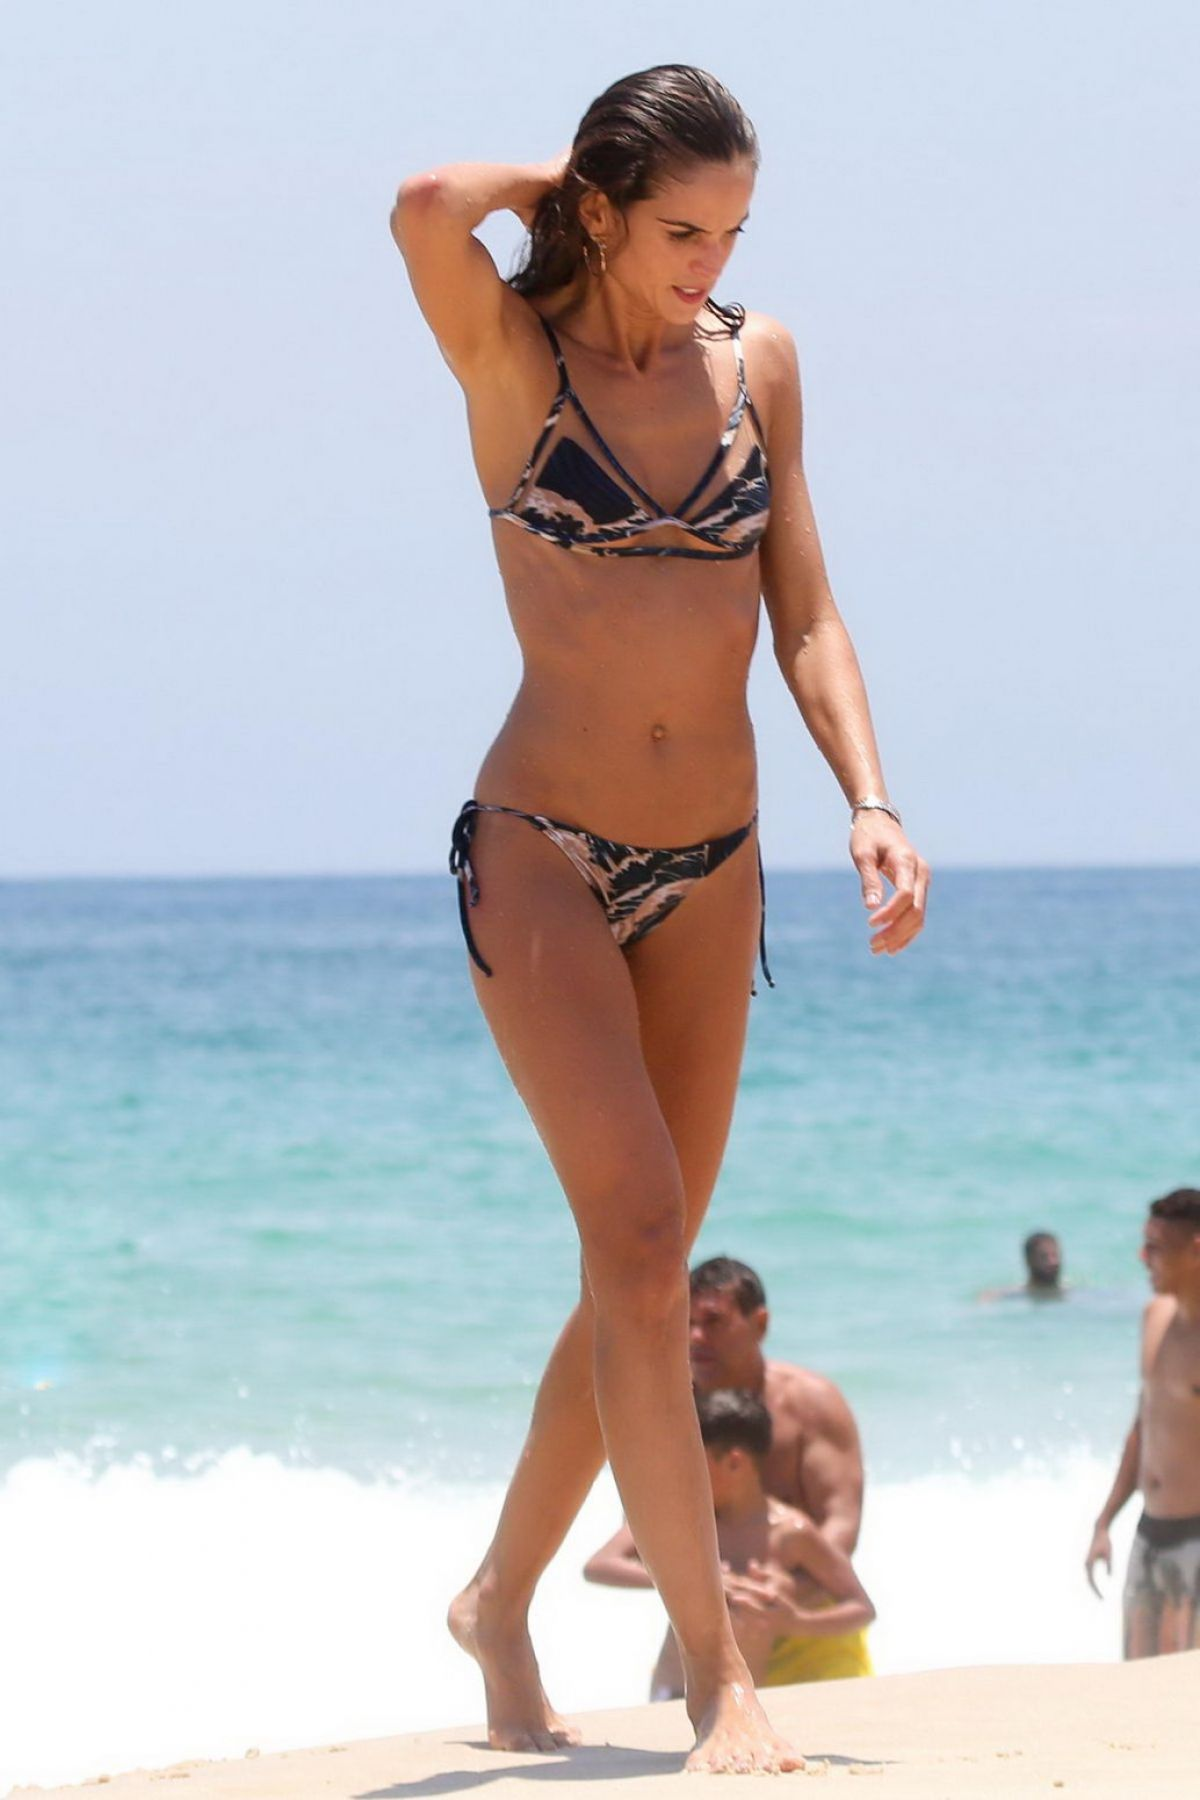 Izabel Goulart in Bikini with boyfriend on the beach in Recife Pic 7 of 35